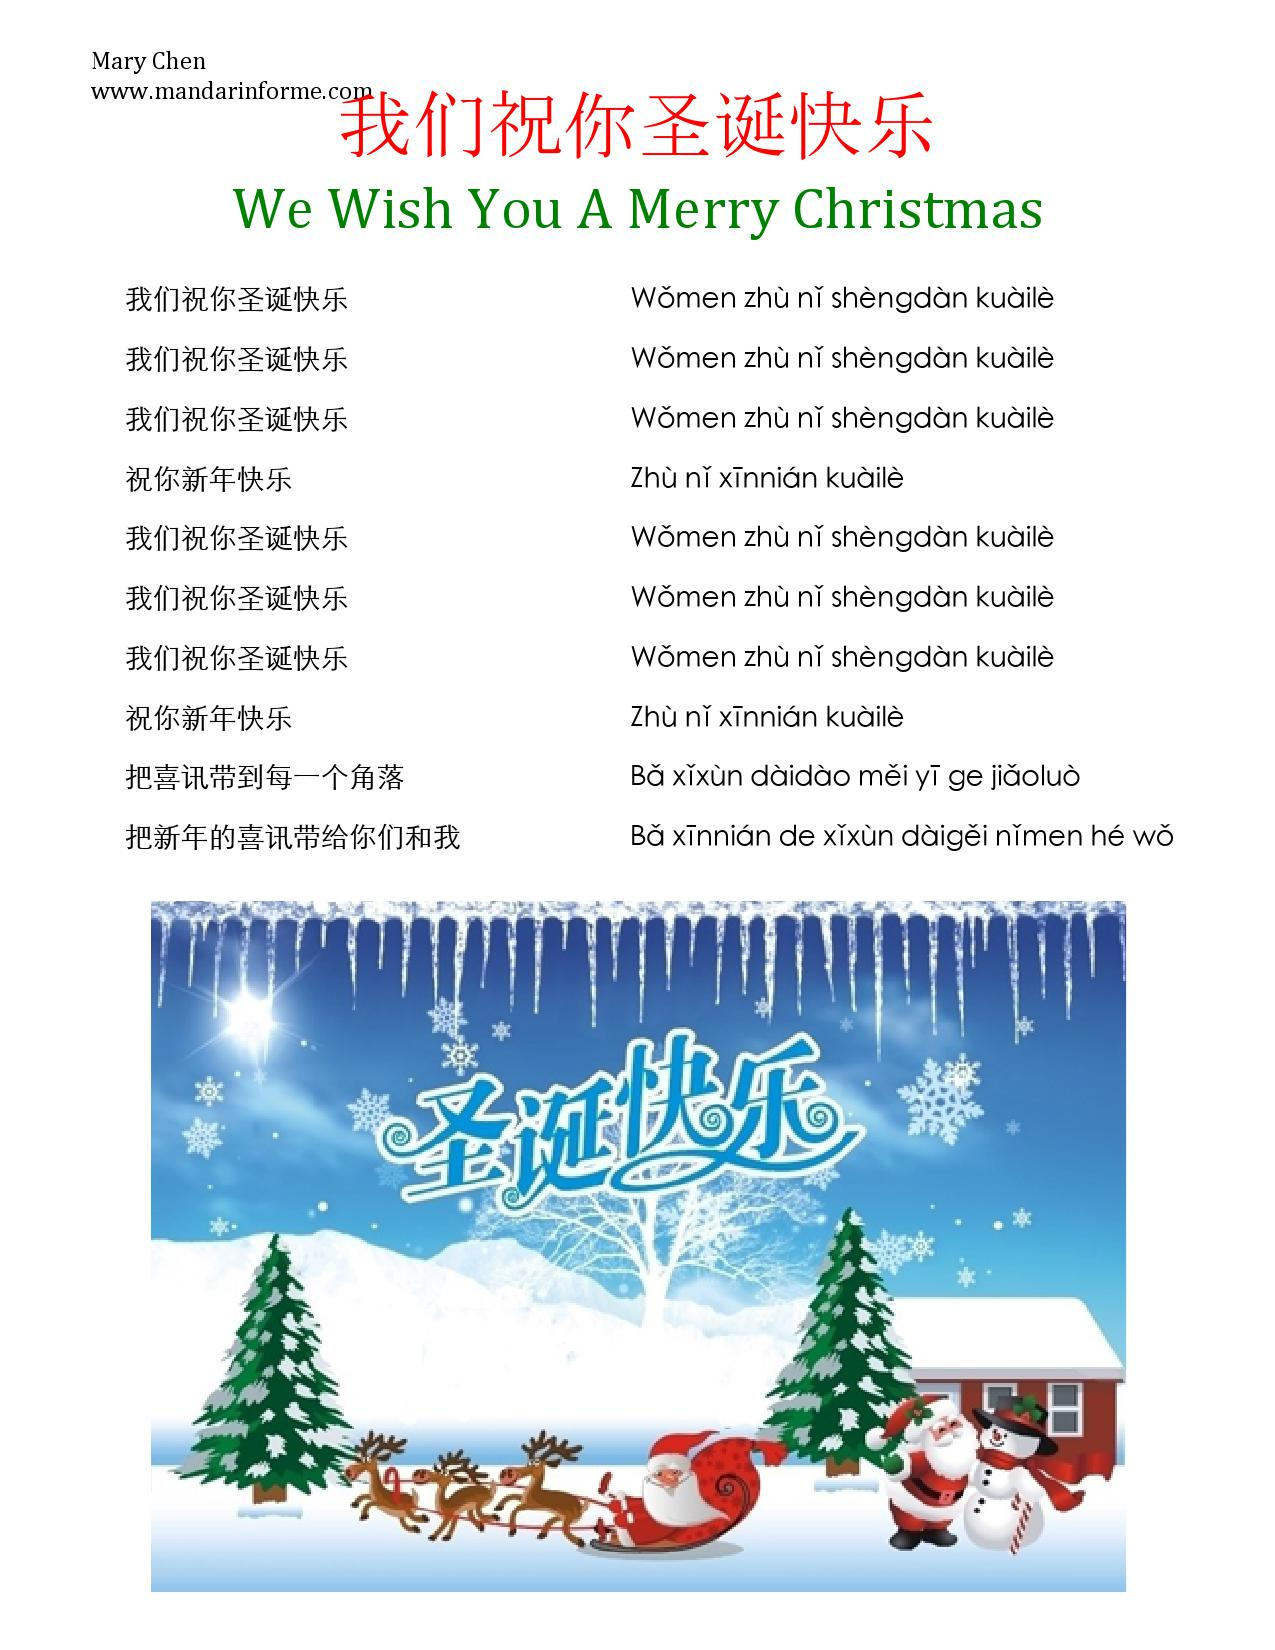 We Wish You A Merry Christmas Lyrics Viewing Gallery - Christmas ...